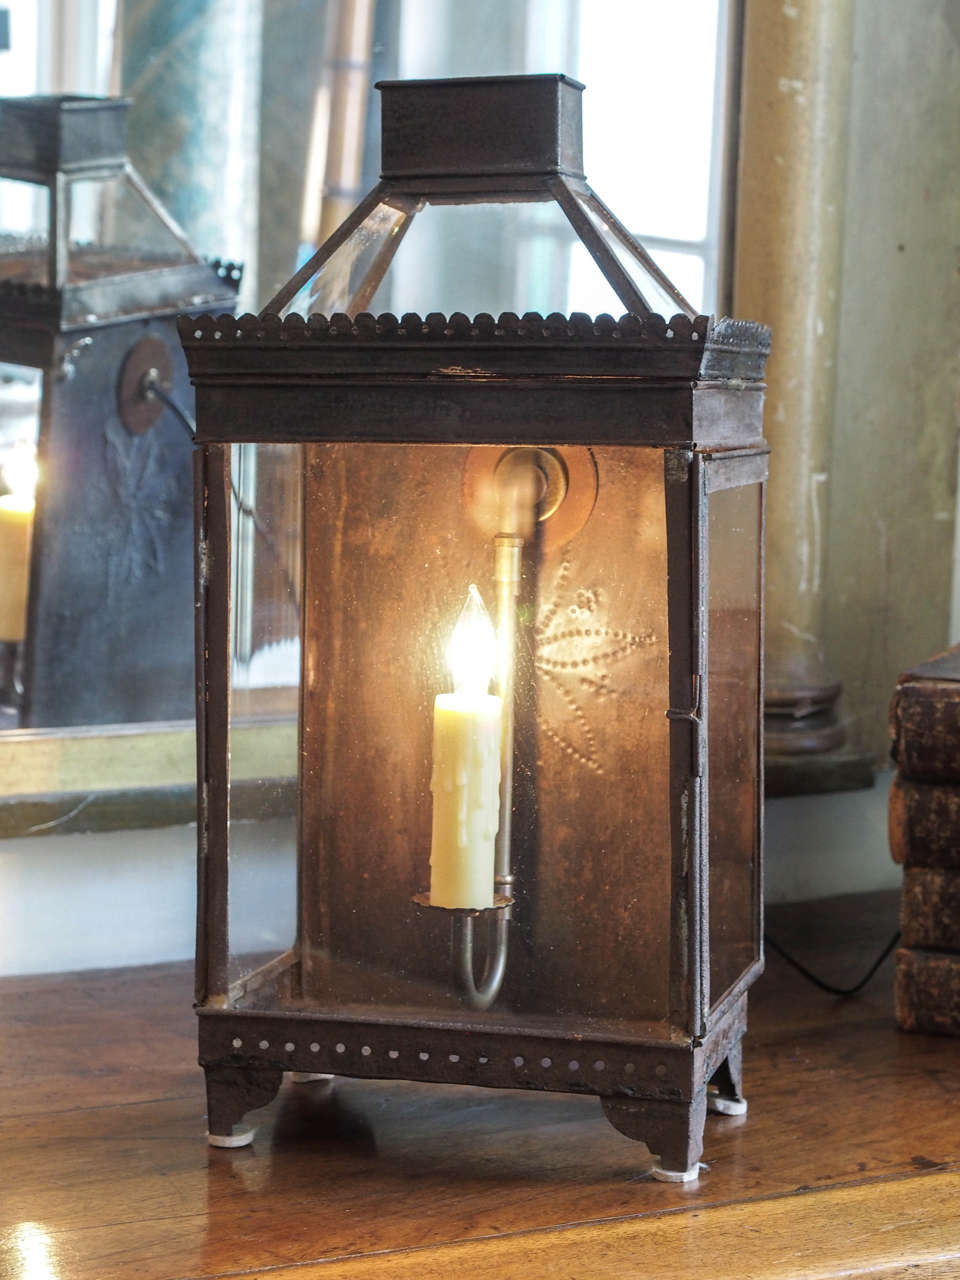 This handsome 19th century French lantern has a wonderful patina and the